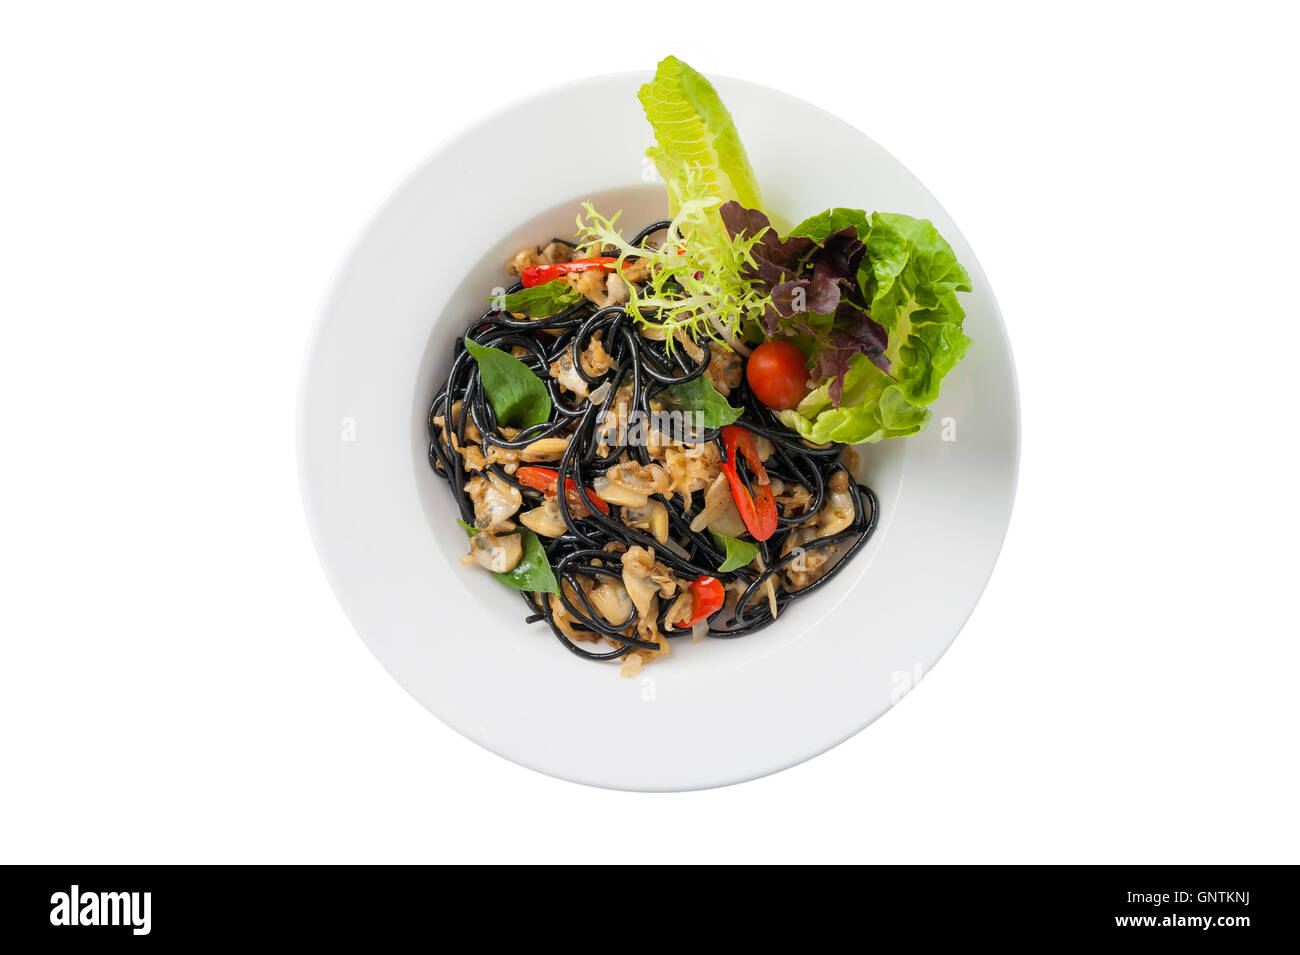 Top view of Italian and Thai fusion food style spicy black pasta ...